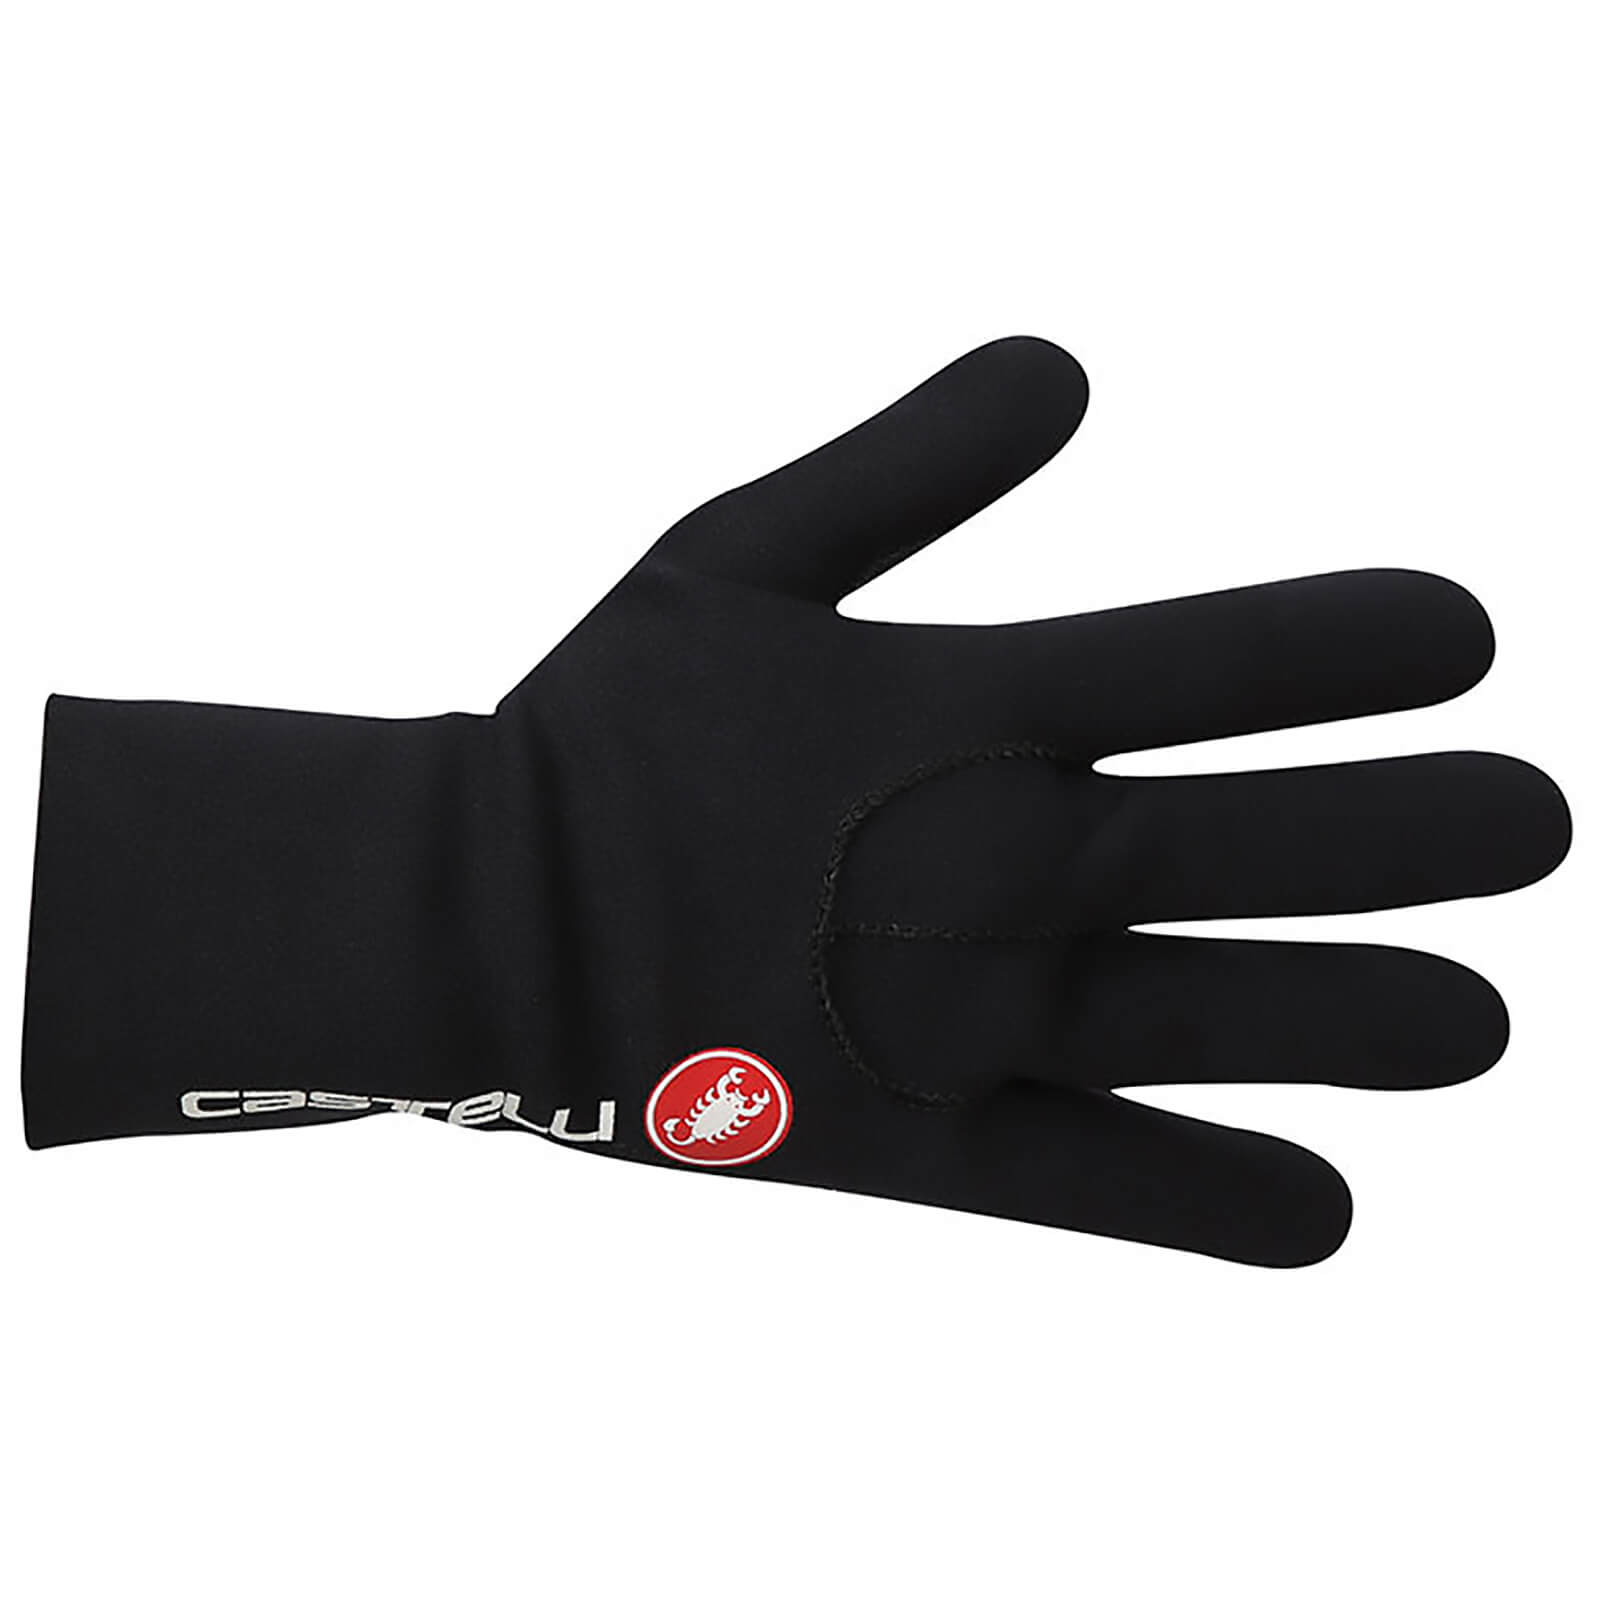 Castelli Diluvio Light Gloves - Black/Red